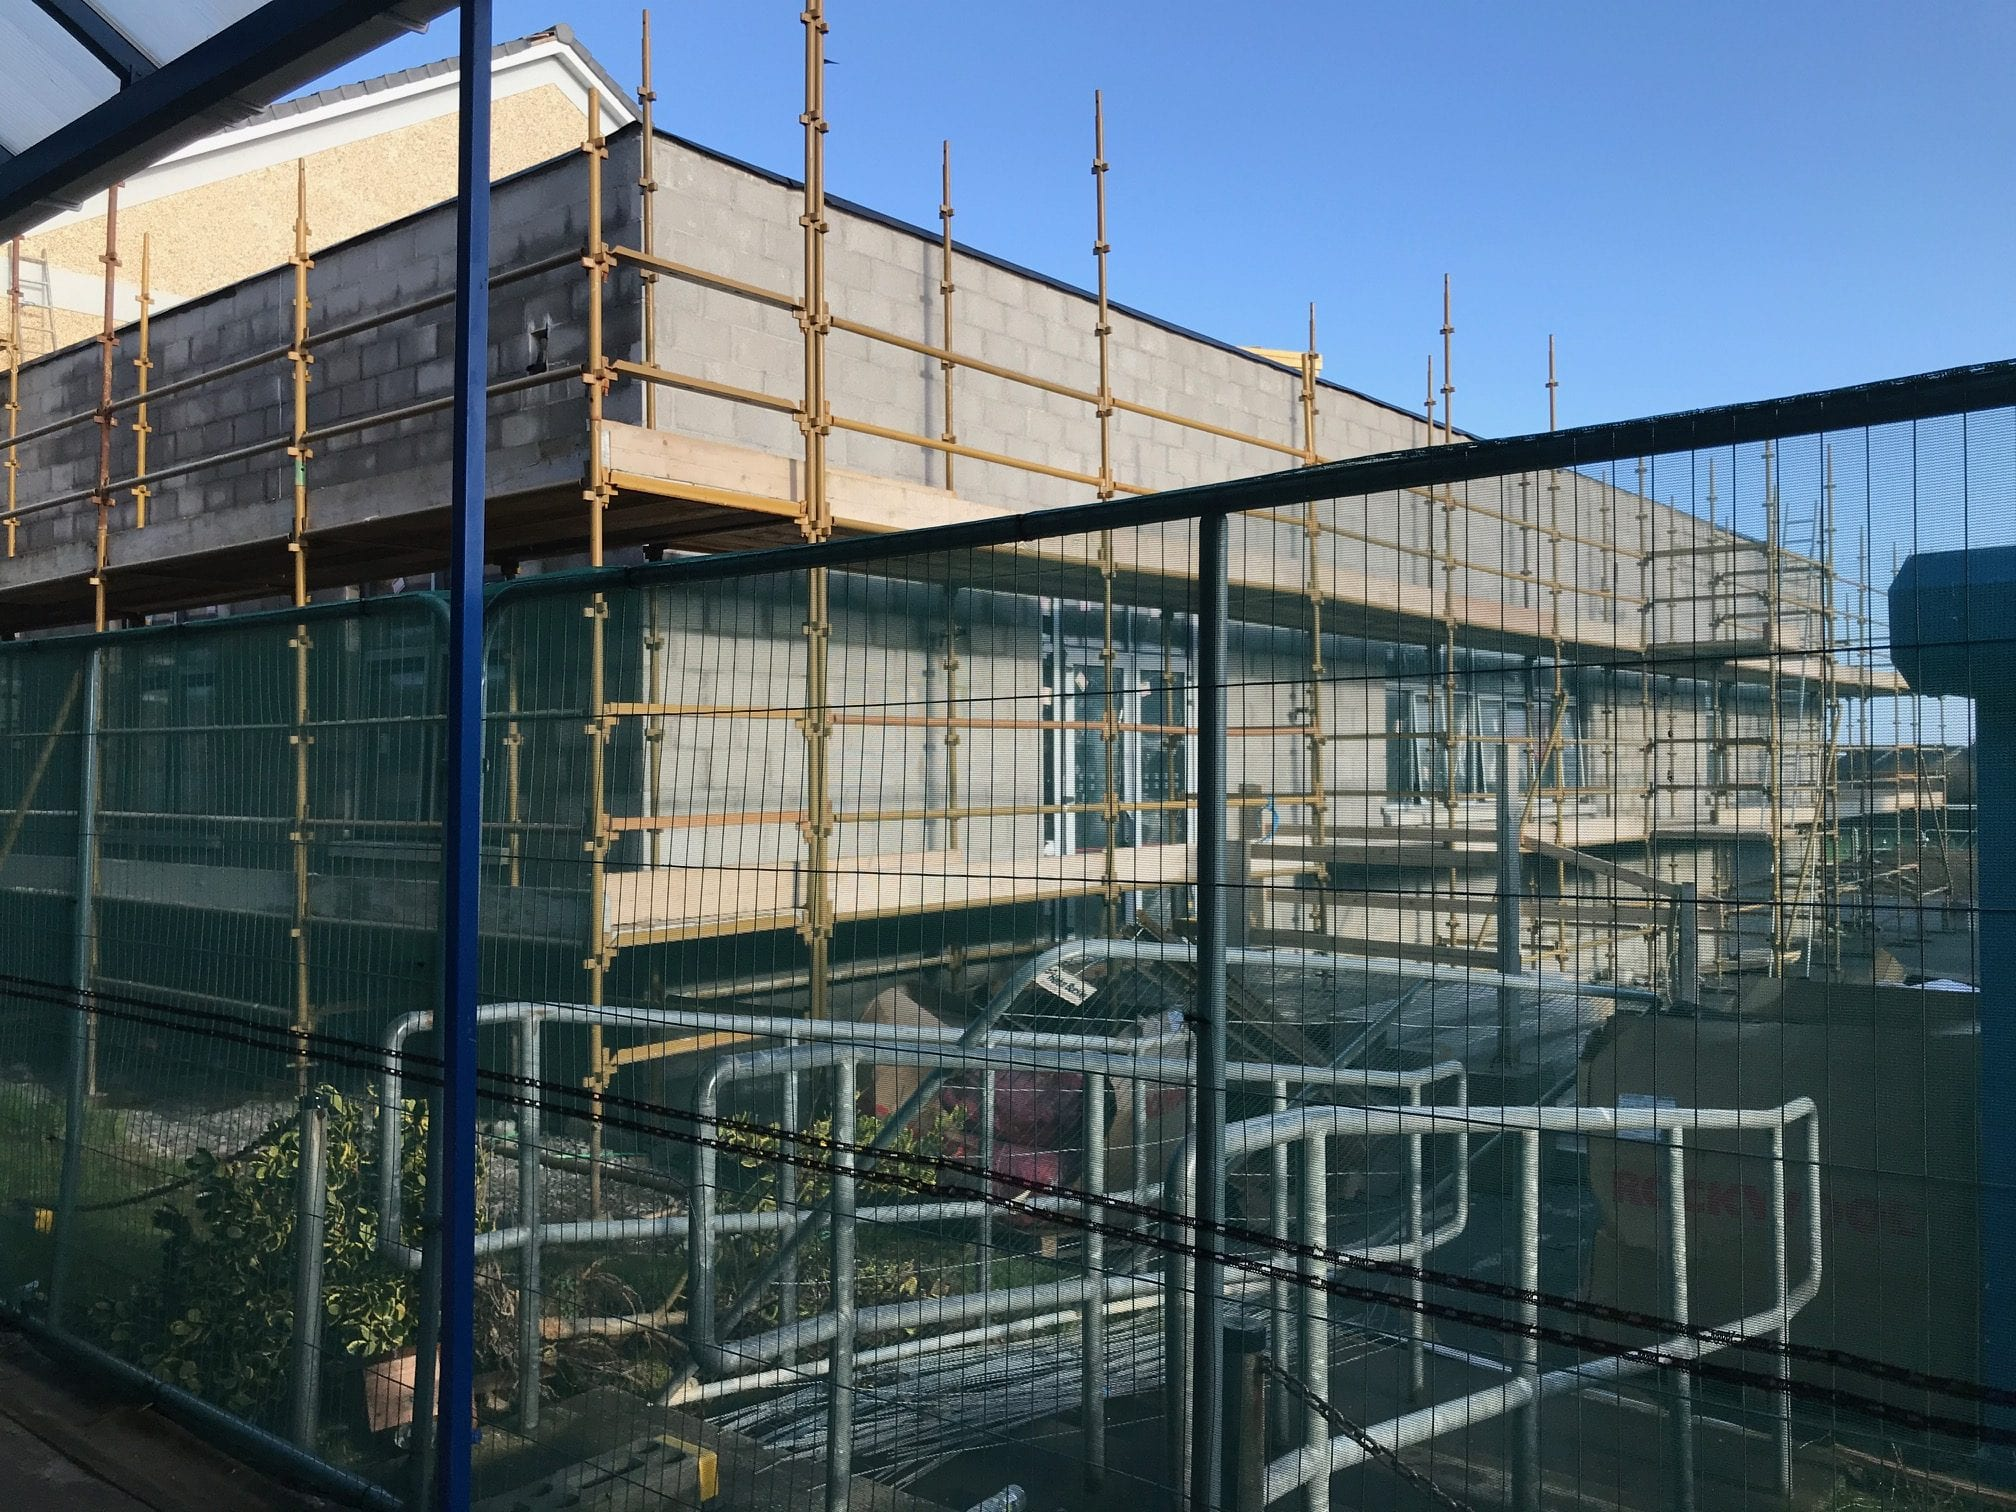 February 2018: New Woodwork Room and Classrooms for Desmond College by Moloney Contractors